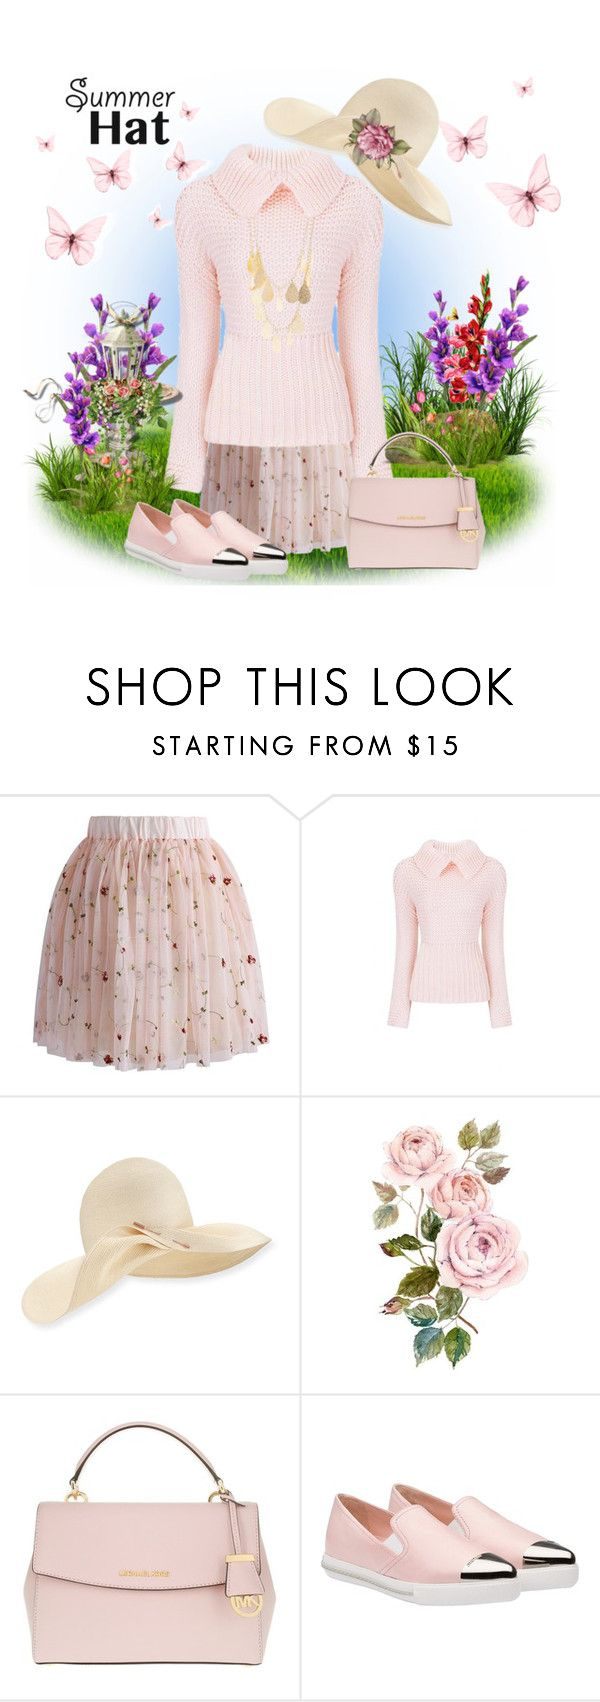 """Sweet Summer Hat"" by loves-elephants ❤ liked on Polyvore featuring Chicwish, Eugenia Kim, Michael Kors, Miu Miu, Charlotte Russe and summerhat"